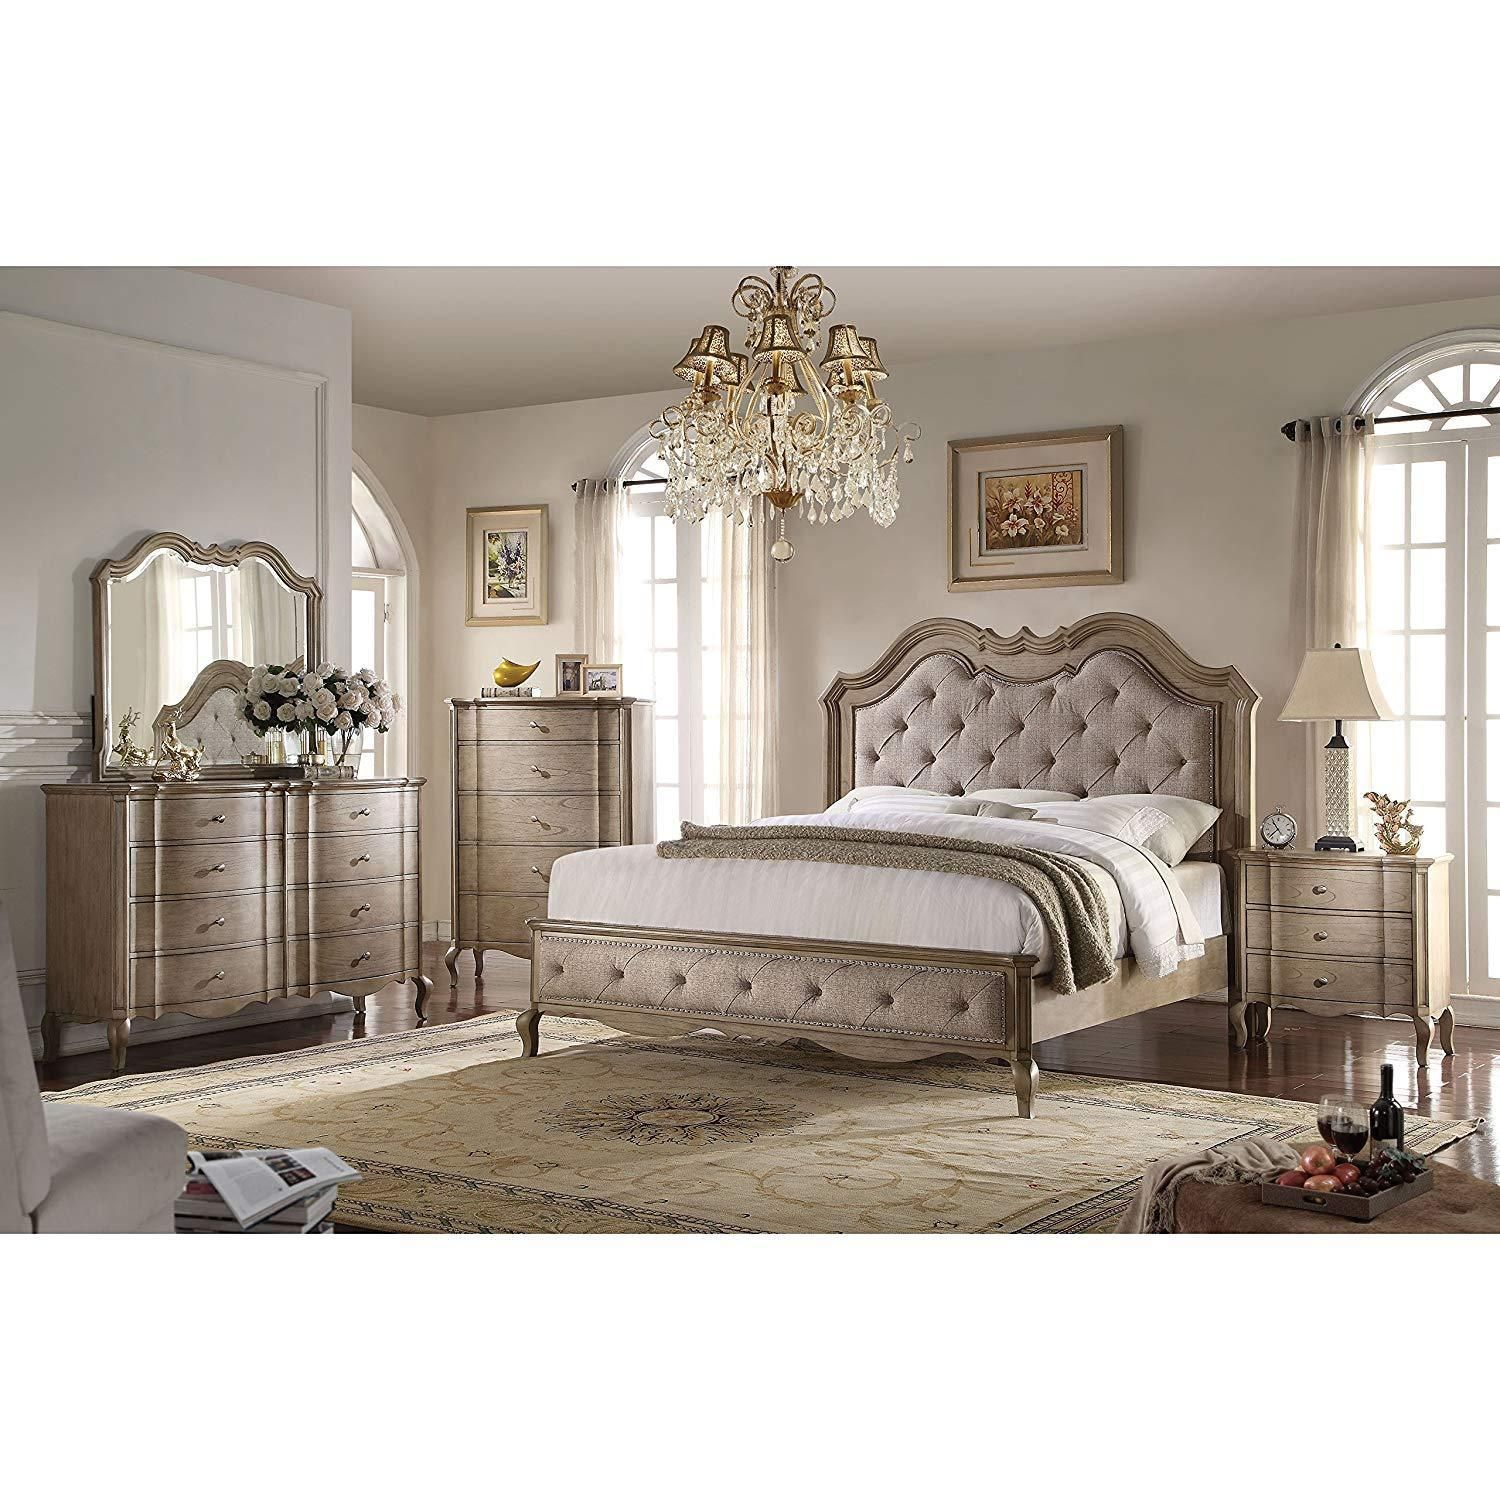 Acme chelmsford beige fabric piece bedroom set products in